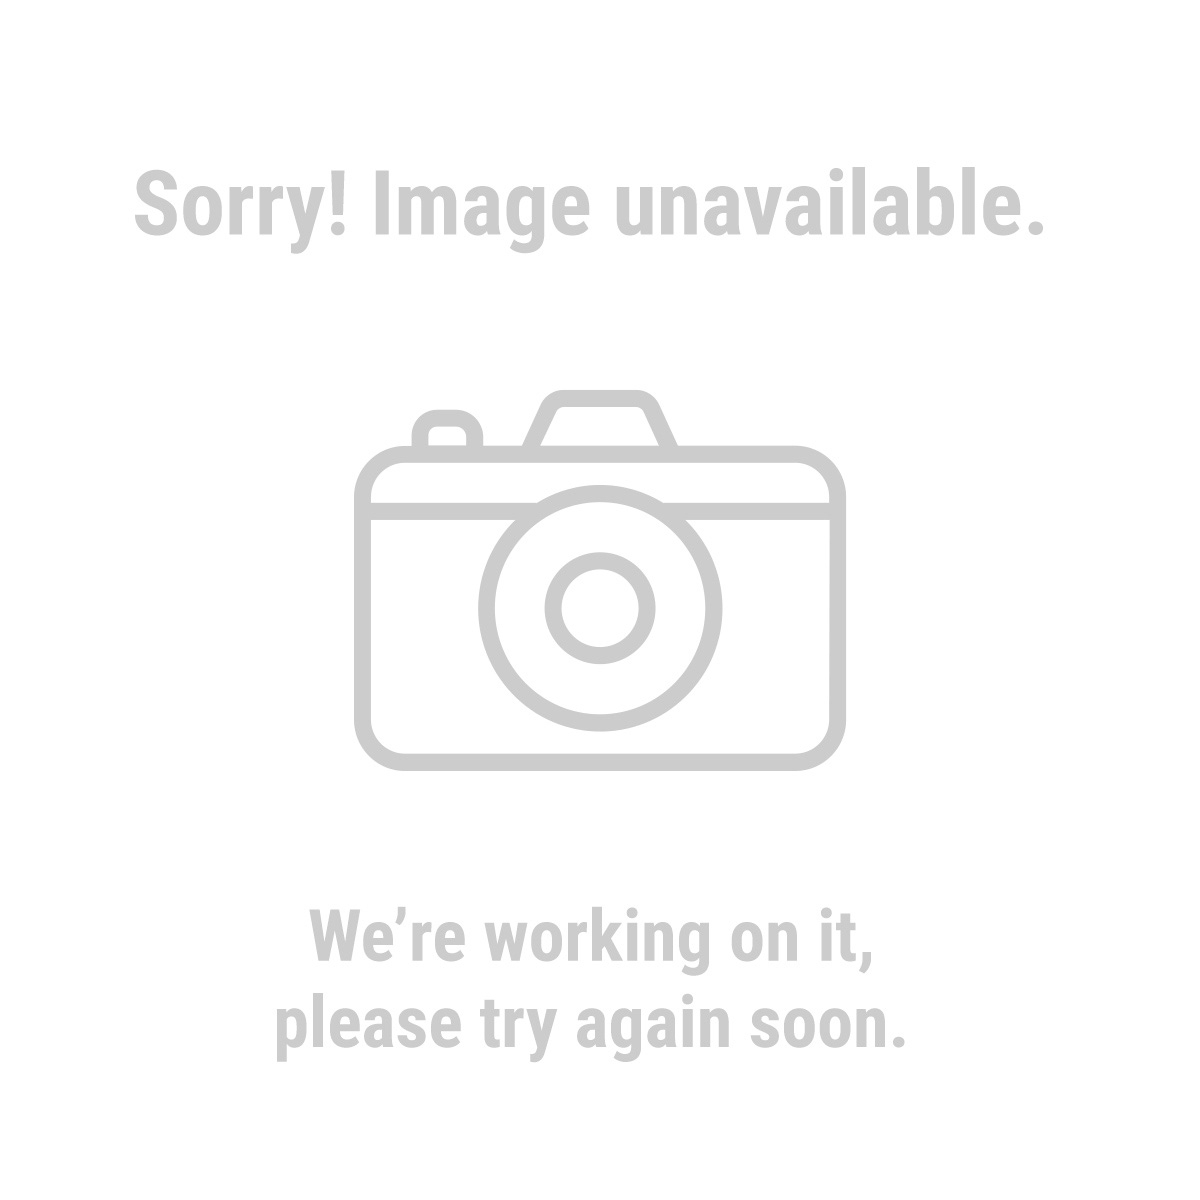 Haul-Master® 62409 10 in. Pneumatic Tire with White Hub